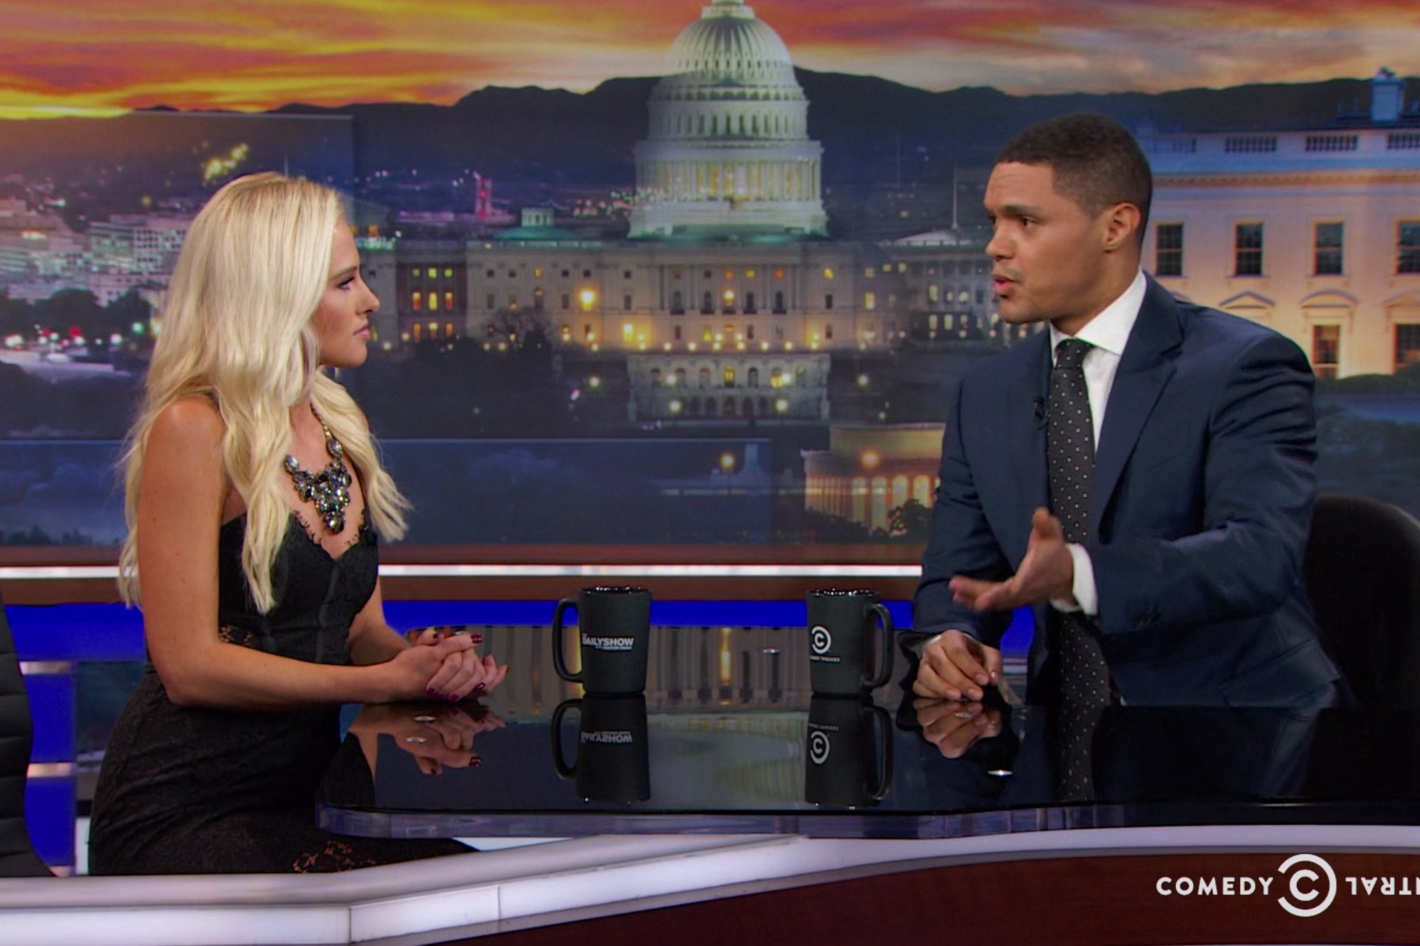 Trevor noah thoughtfully confronting tomi lahren on racism on the daily show might be his best work ever